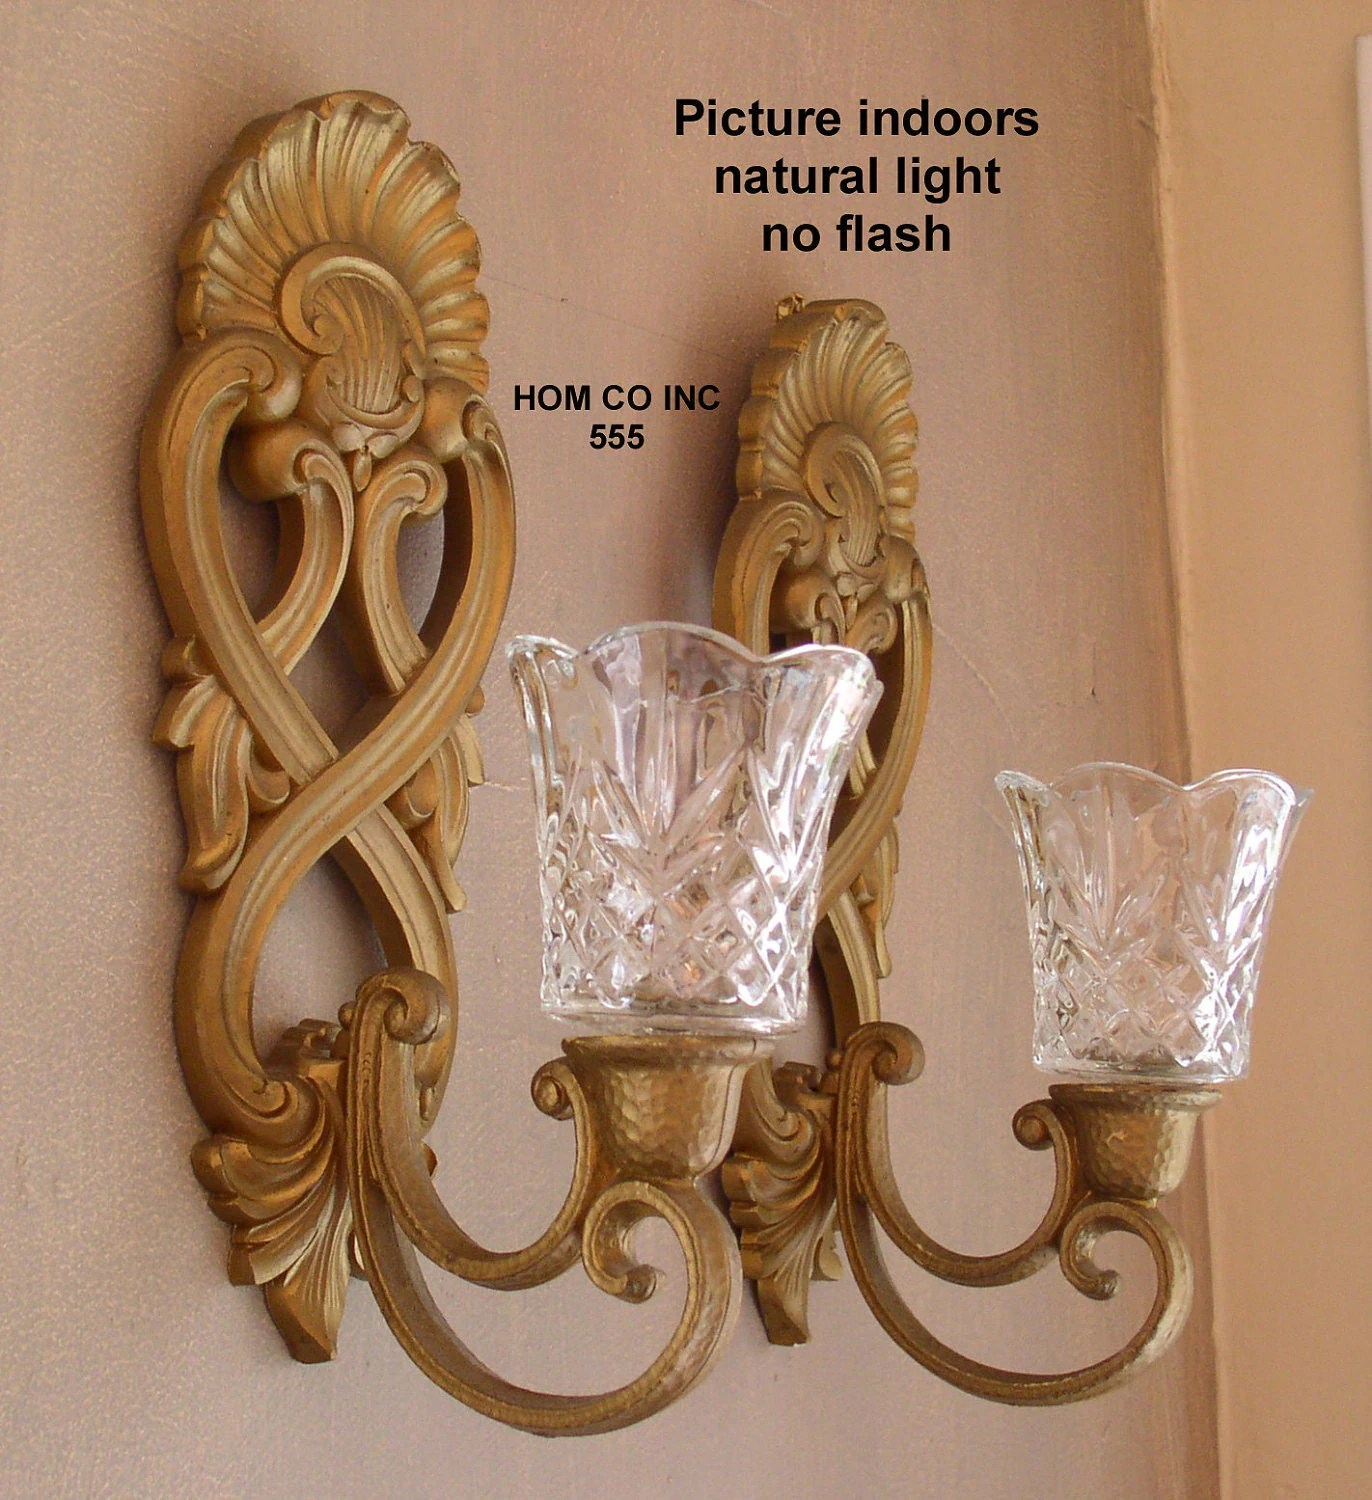 Vintage Scroll Wall Sconce Candle Holder with Glass Inserts on Wall Sconces Candle Holders id=60515